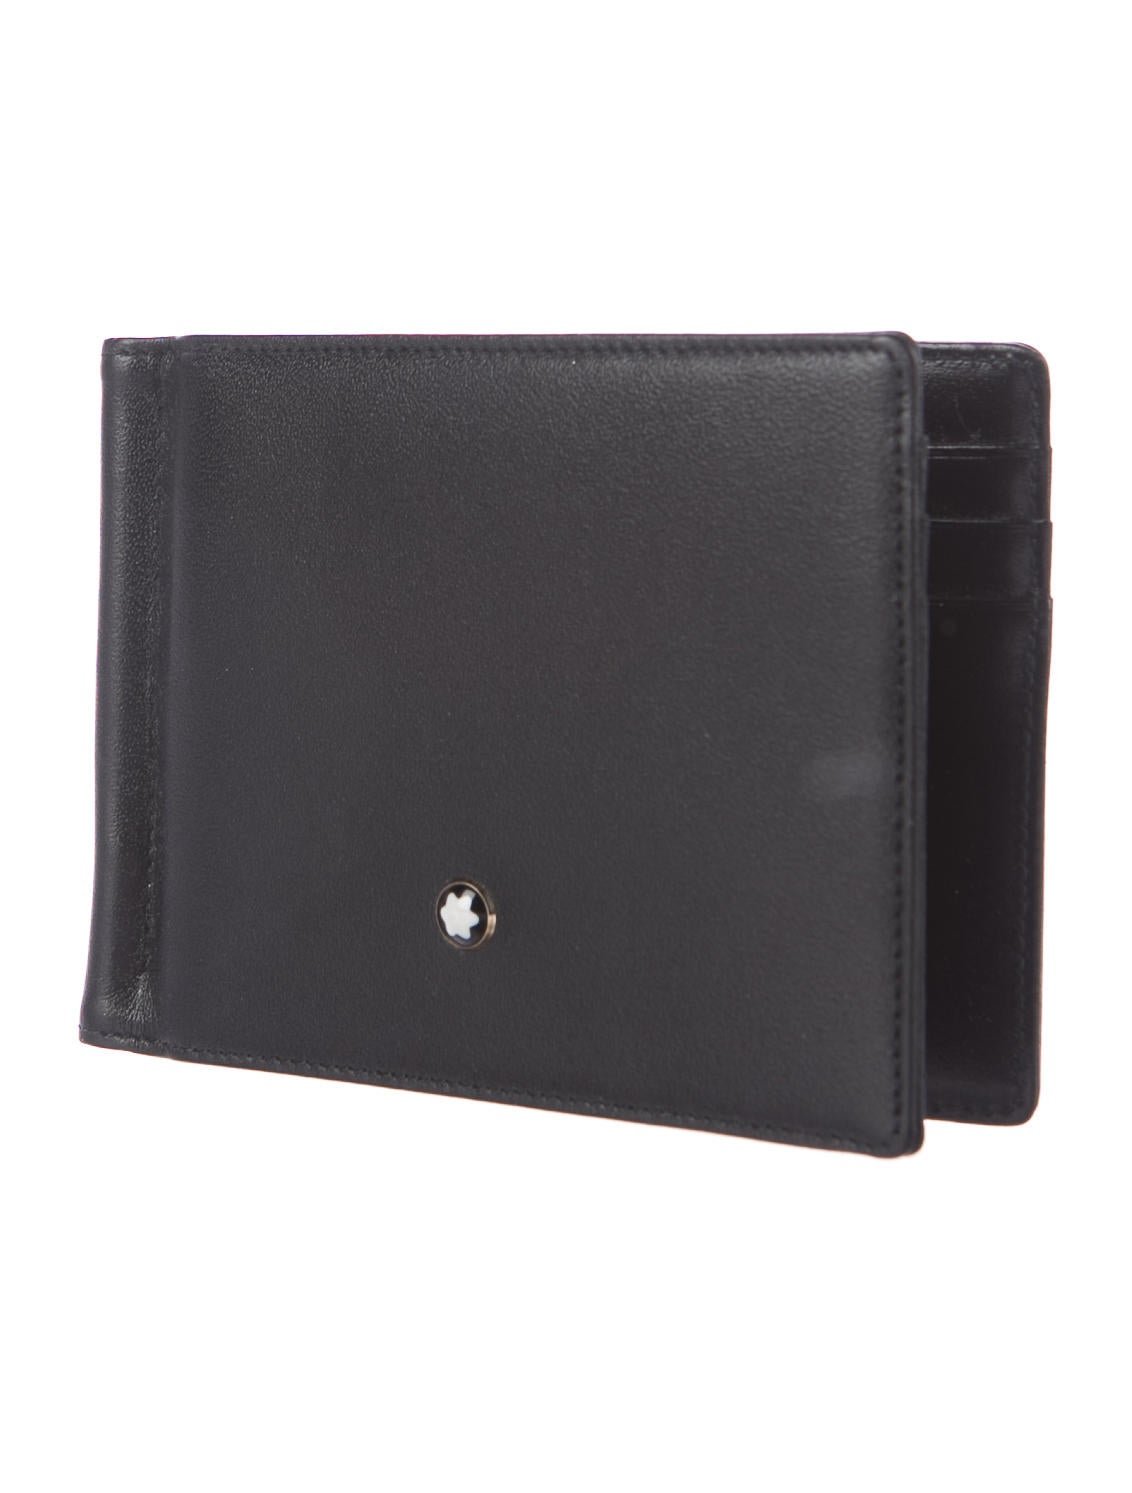 Mont Blanc Leather Money Clip Wallet